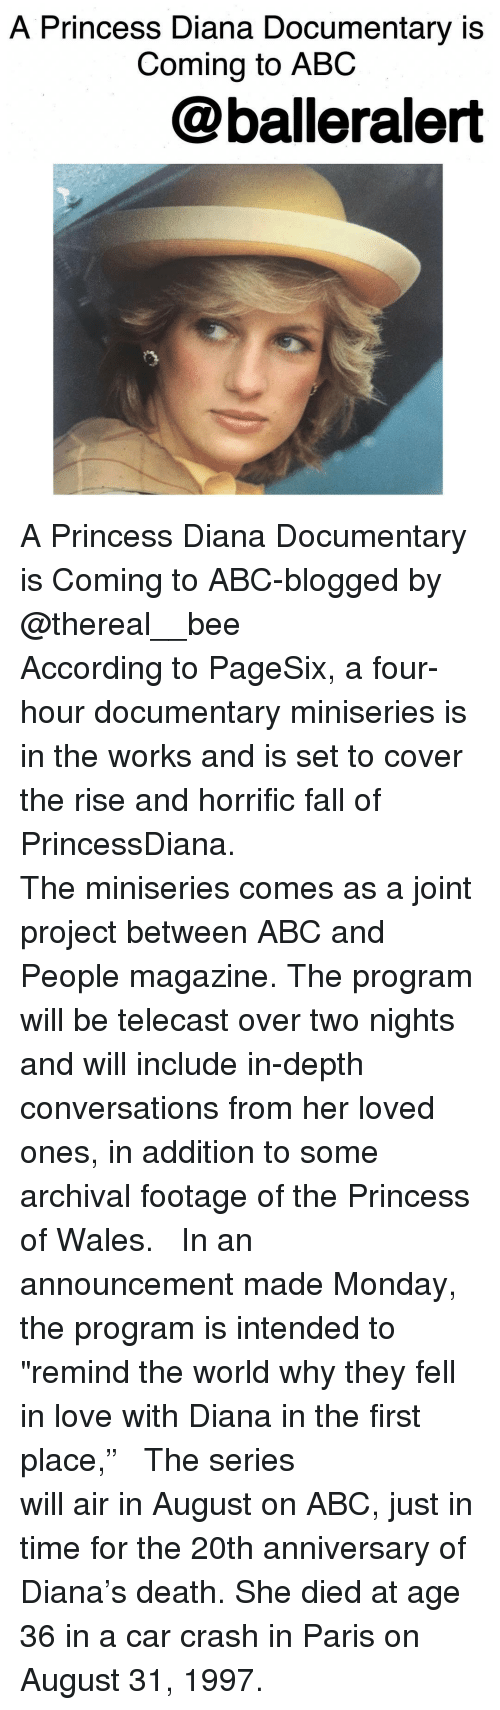 "Car Crashing: A Princess Diana Documentary is  Coming to ABC  @balleralert A Princess Diana Documentary is Coming to ABC-blogged by @thereal__bee ⠀⠀⠀⠀⠀⠀⠀⠀⠀ ⠀⠀⠀⠀⠀⠀⠀⠀⠀ According to PageSix, a four-hour documentary miniseries is in the works and is set to cover the rise and horrific fall of PrincessDiana. ⠀⠀⠀⠀⠀⠀⠀⠀⠀ ⠀⠀⠀⠀⠀⠀⠀⠀⠀ The miniseries comes as a joint project between ABC and People magazine. The program will be telecast over two nights and will include in-depth conversations from her loved ones, in addition to some archival footage of the Princess of Wales. ⠀⠀⠀⠀⠀⠀⠀⠀⠀ ⠀⠀⠀⠀⠀⠀⠀⠀⠀ In an announcement made Monday, the program is intended to ""remind the world why they fell in love with Diana in the first place,"" ⠀⠀⠀⠀⠀⠀⠀⠀⠀ ⠀⠀⠀⠀⠀⠀⠀⠀⠀ The series will air in August on ABC, just in time for the 20th anniversary of Diana's death. She died at age 36 in a car crash in Paris on August 31, 1997."